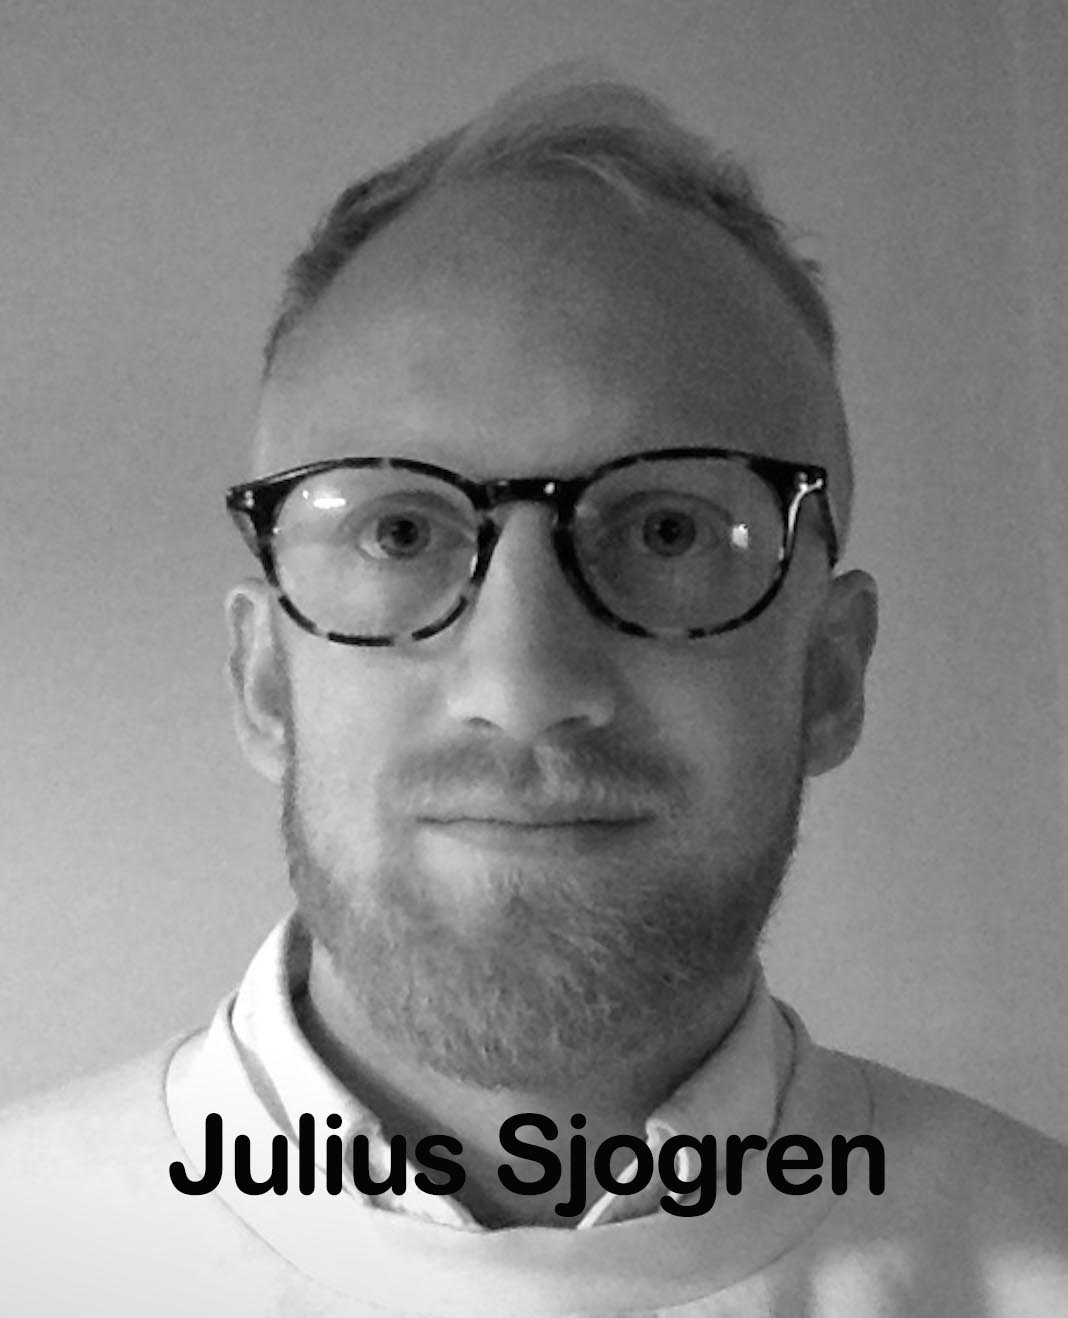 Julius Sjögren name.jpg